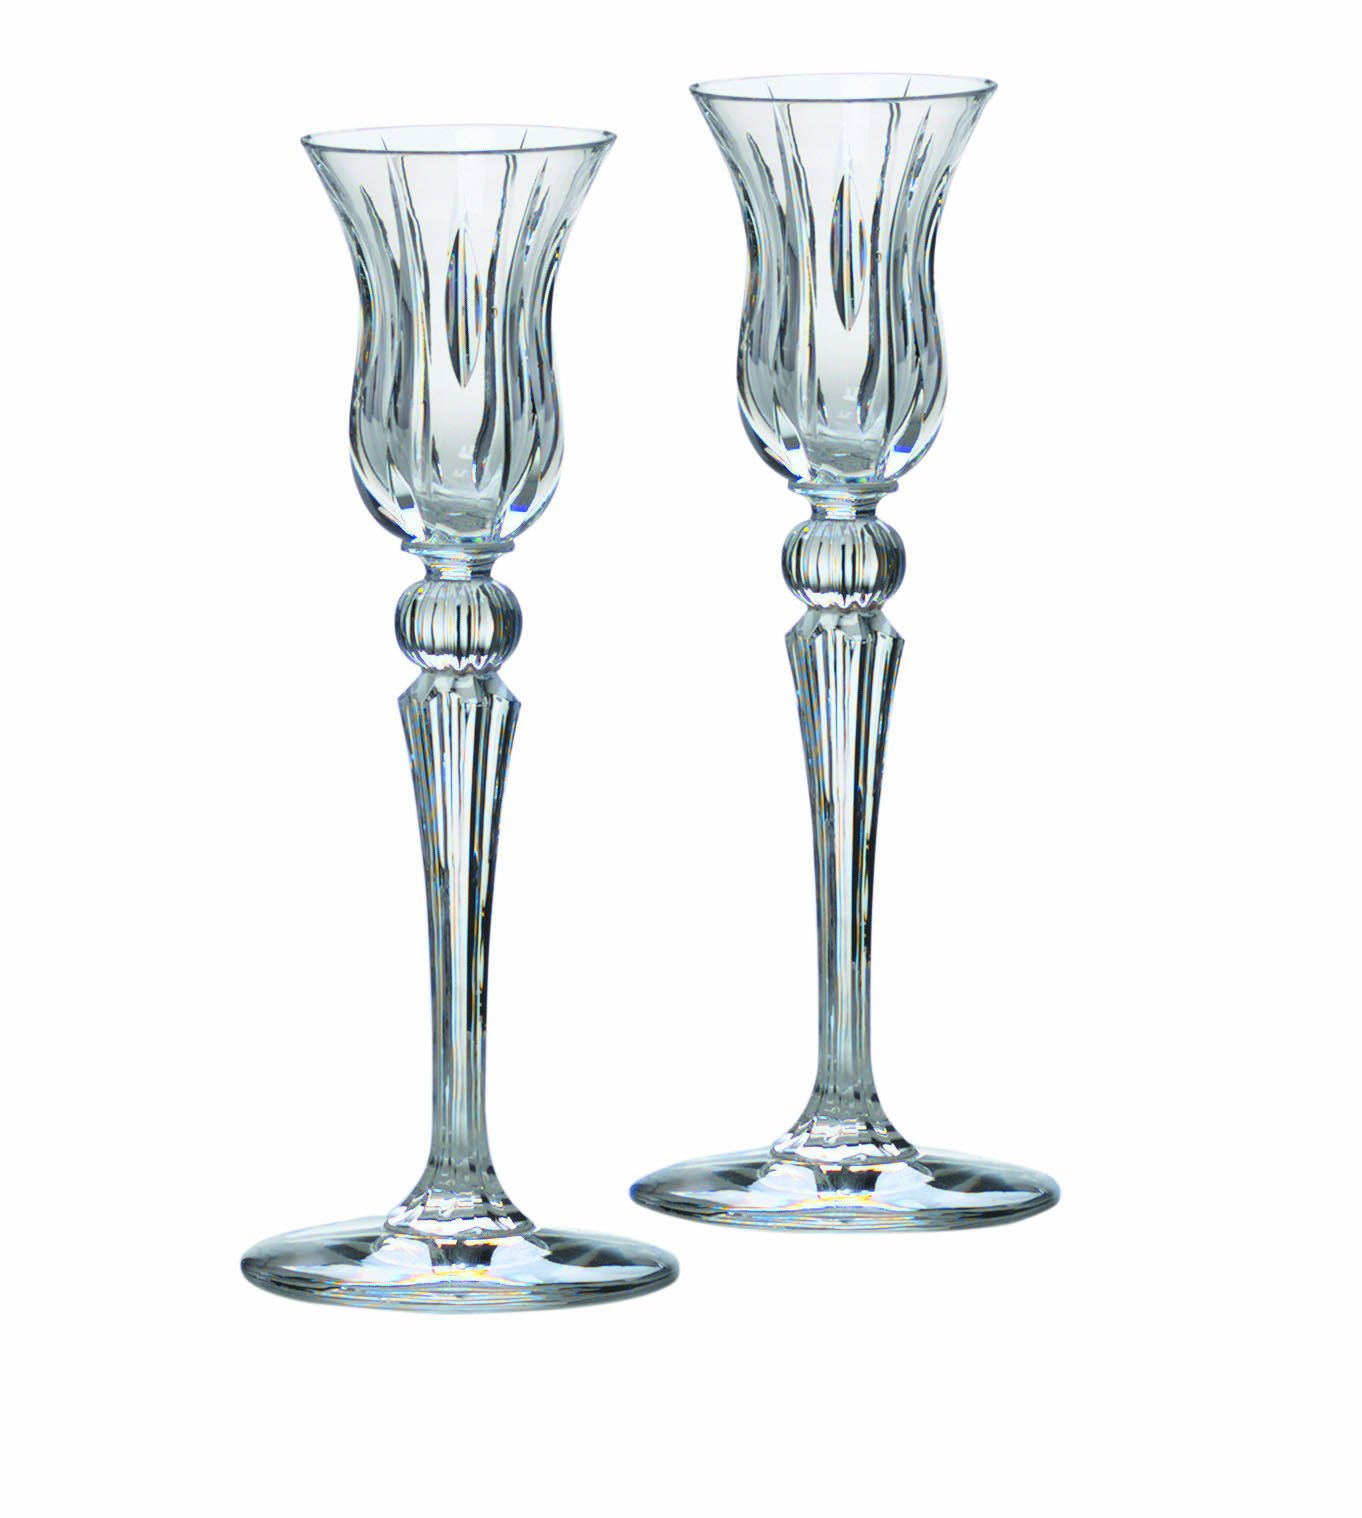 Marquis by Waterford Sheridan 10-Inch Candlestick Pair